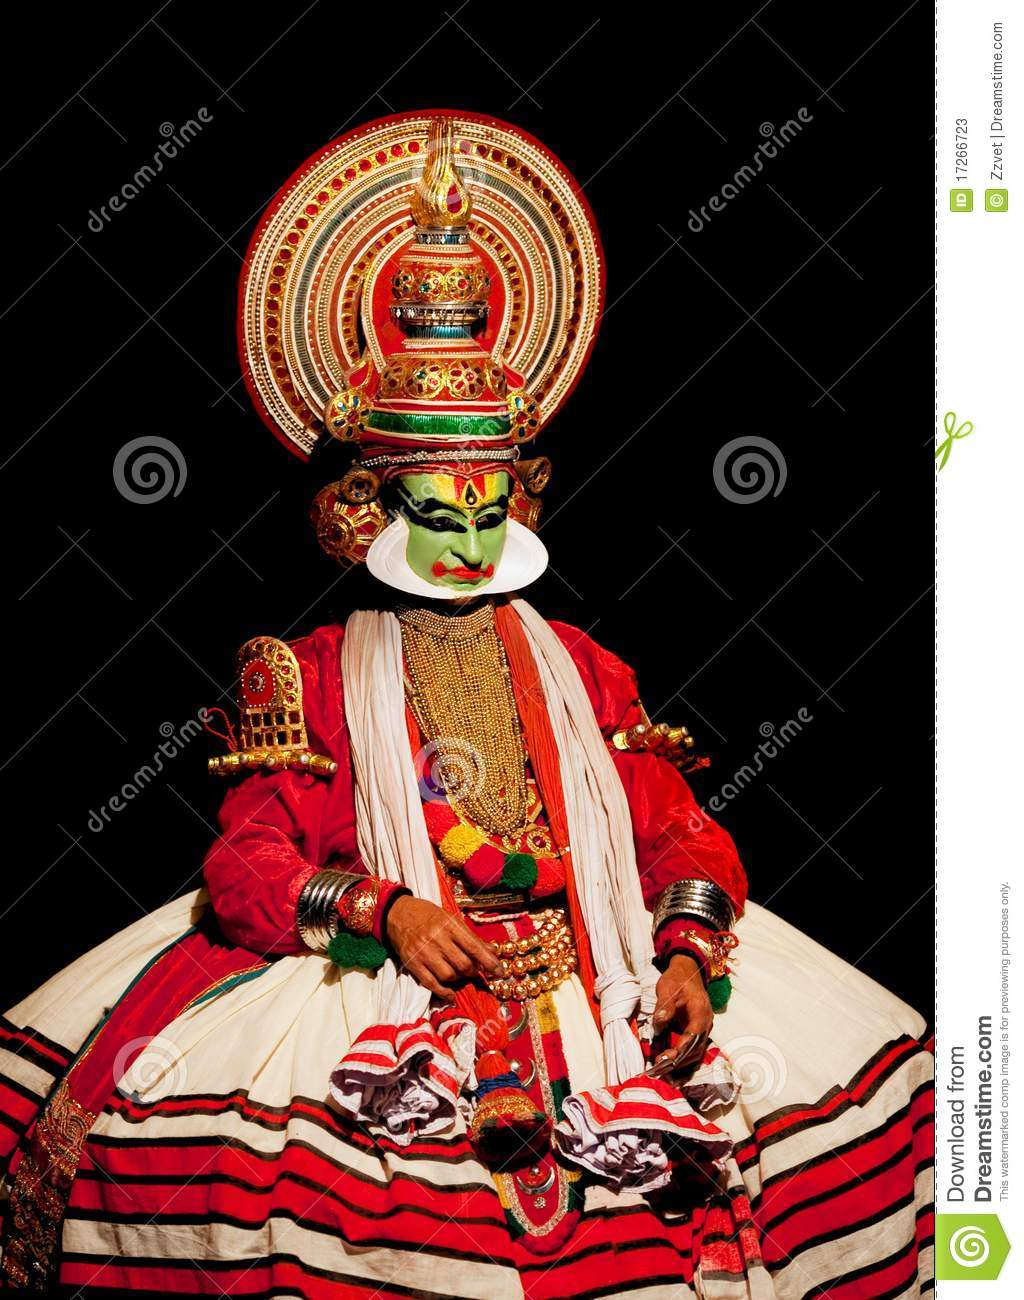 Kathakali Ancient Indian Dance Theater Details